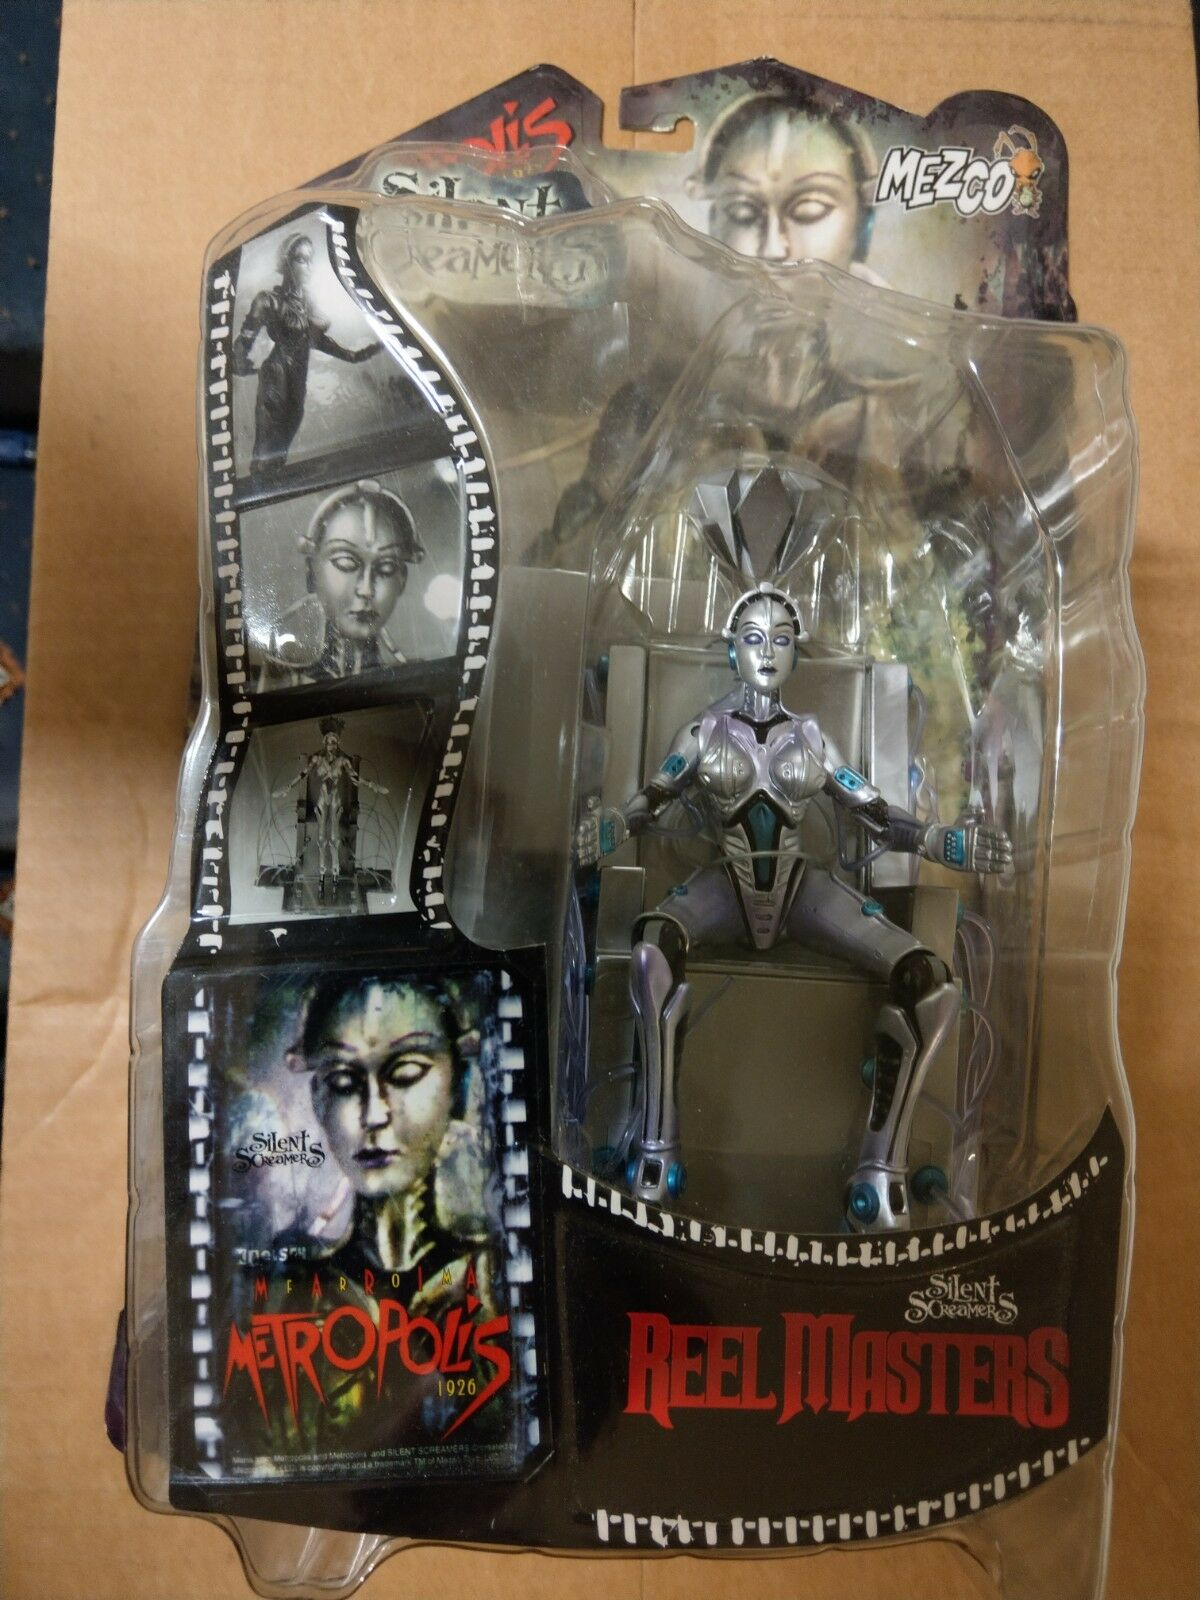 Mezco Silent Screamers Reel Masters Metropolis Boxed Figure